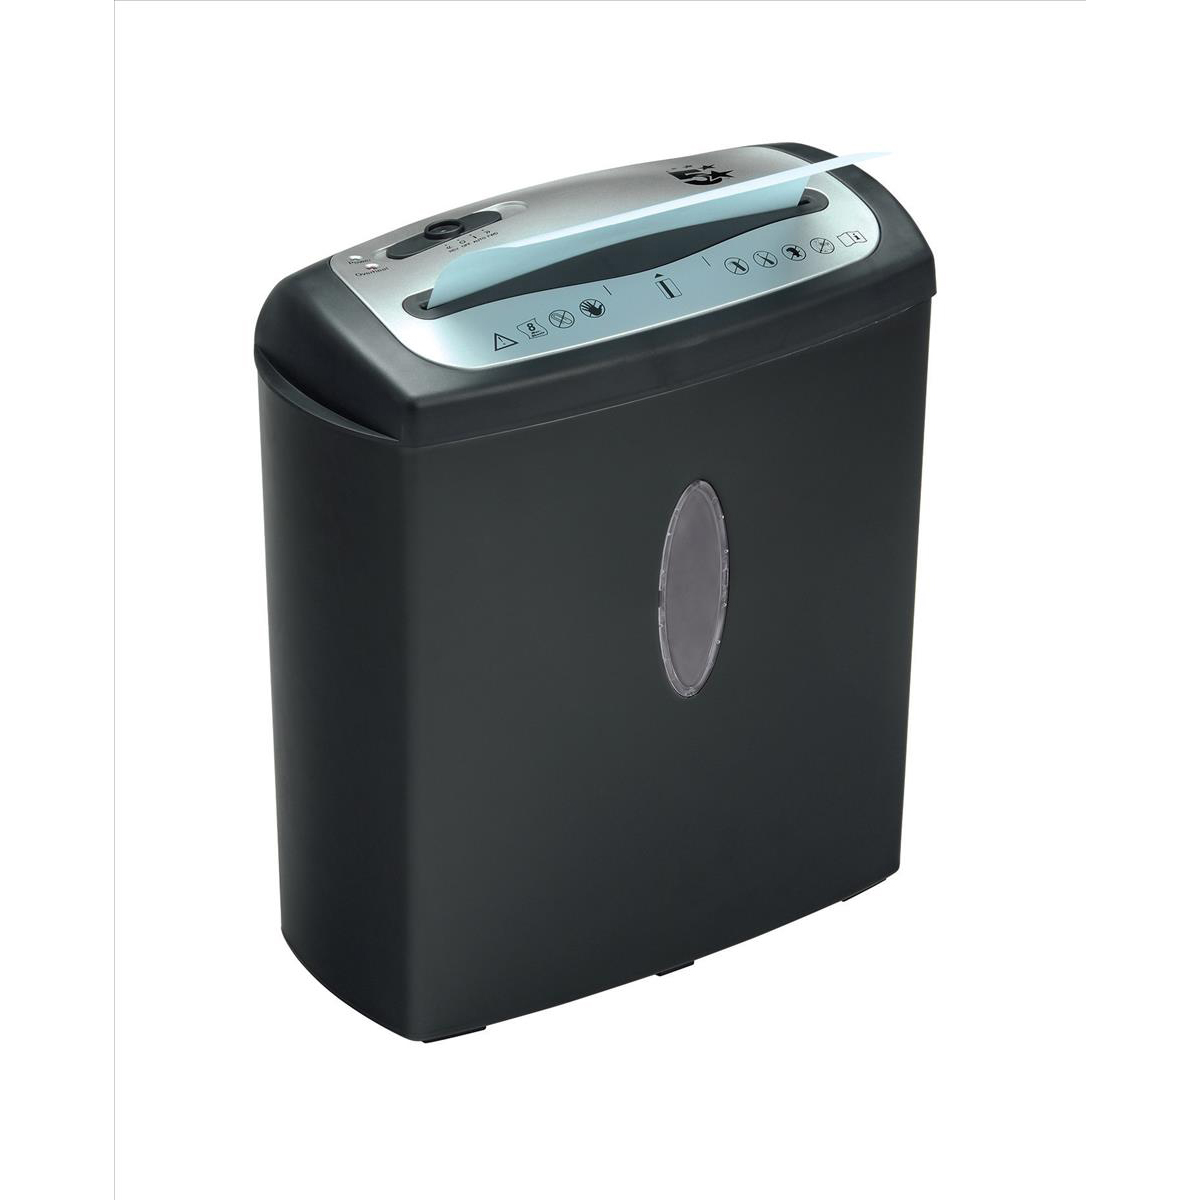 Shredders 5 Star Office CC8 Shredder Cross Cut P-4 Security 15 Litre Capacity Black